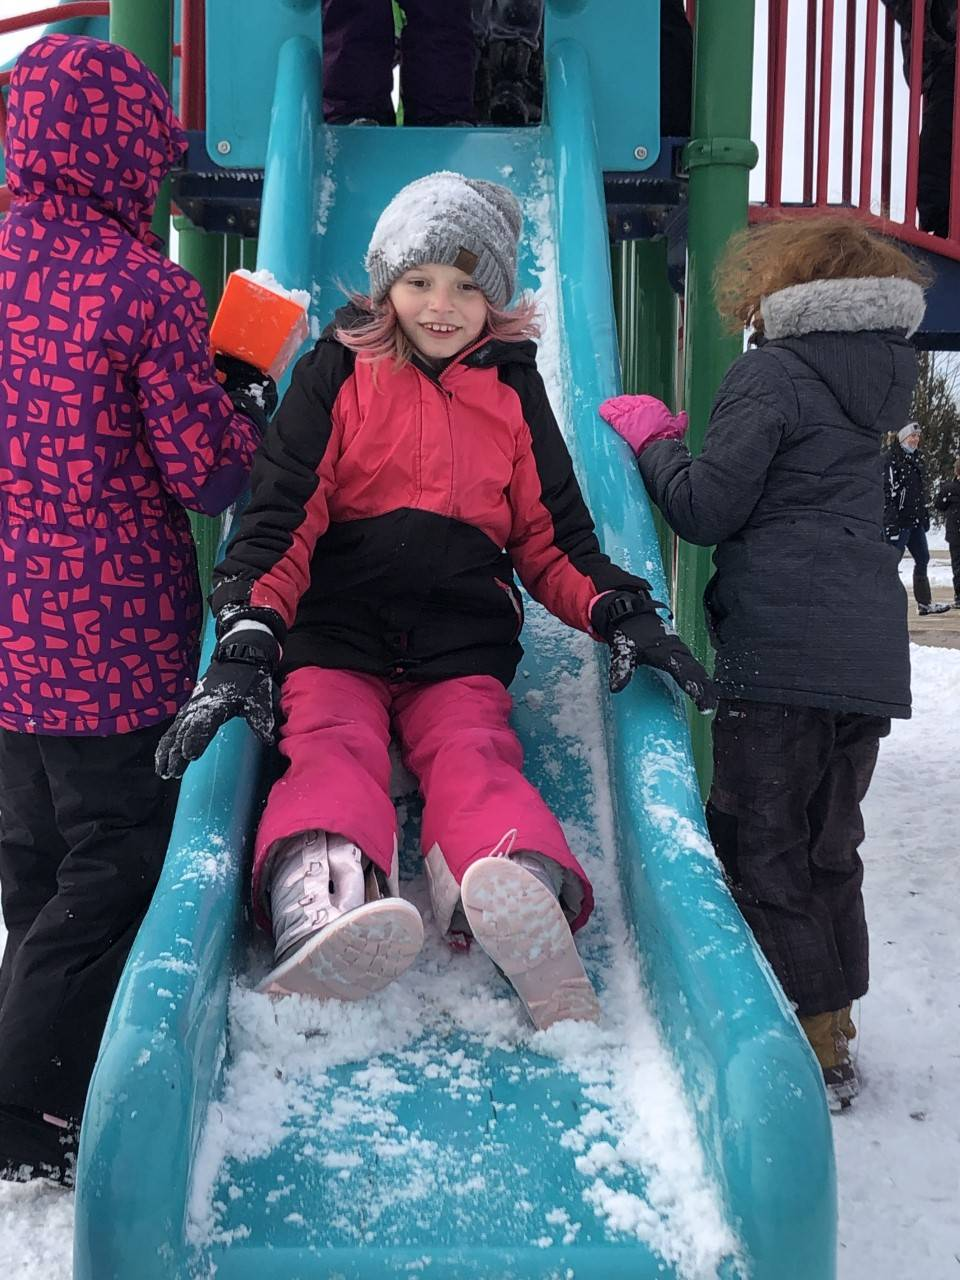 Student playing on slide at recess